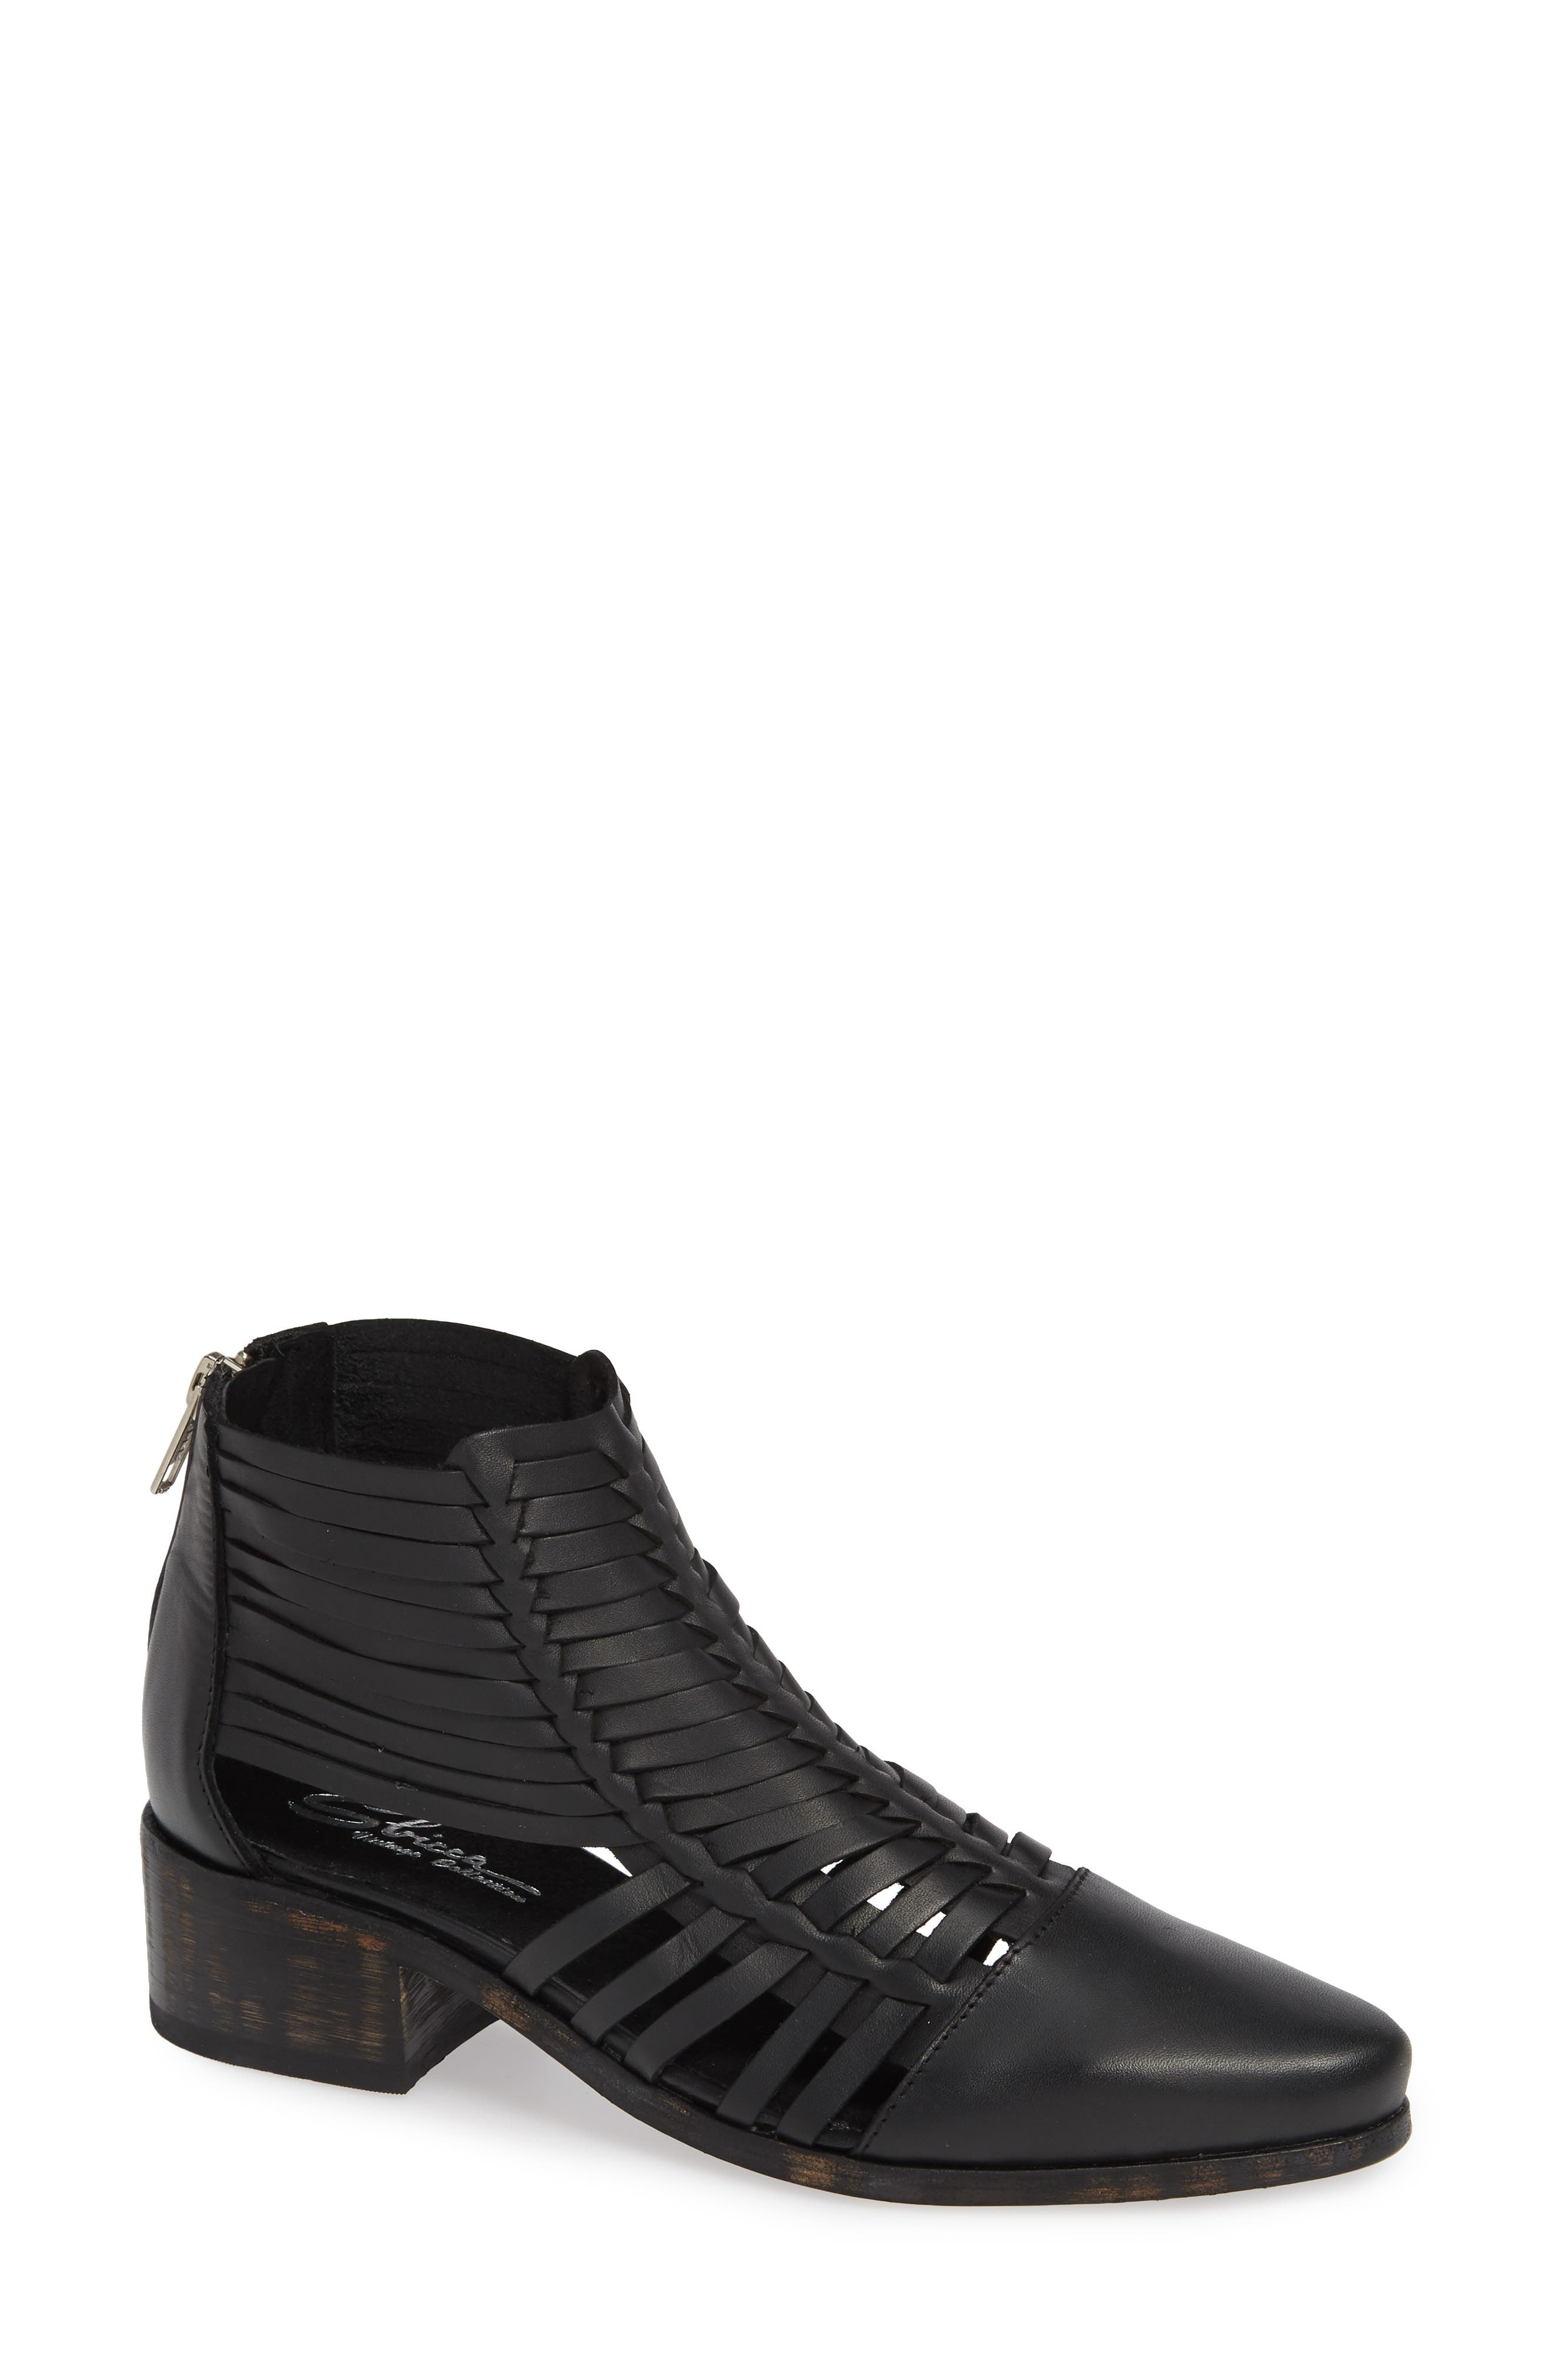 Rosabell Woven Bootie,                             Main thumbnail 1, color,                             BLACK LEATHER